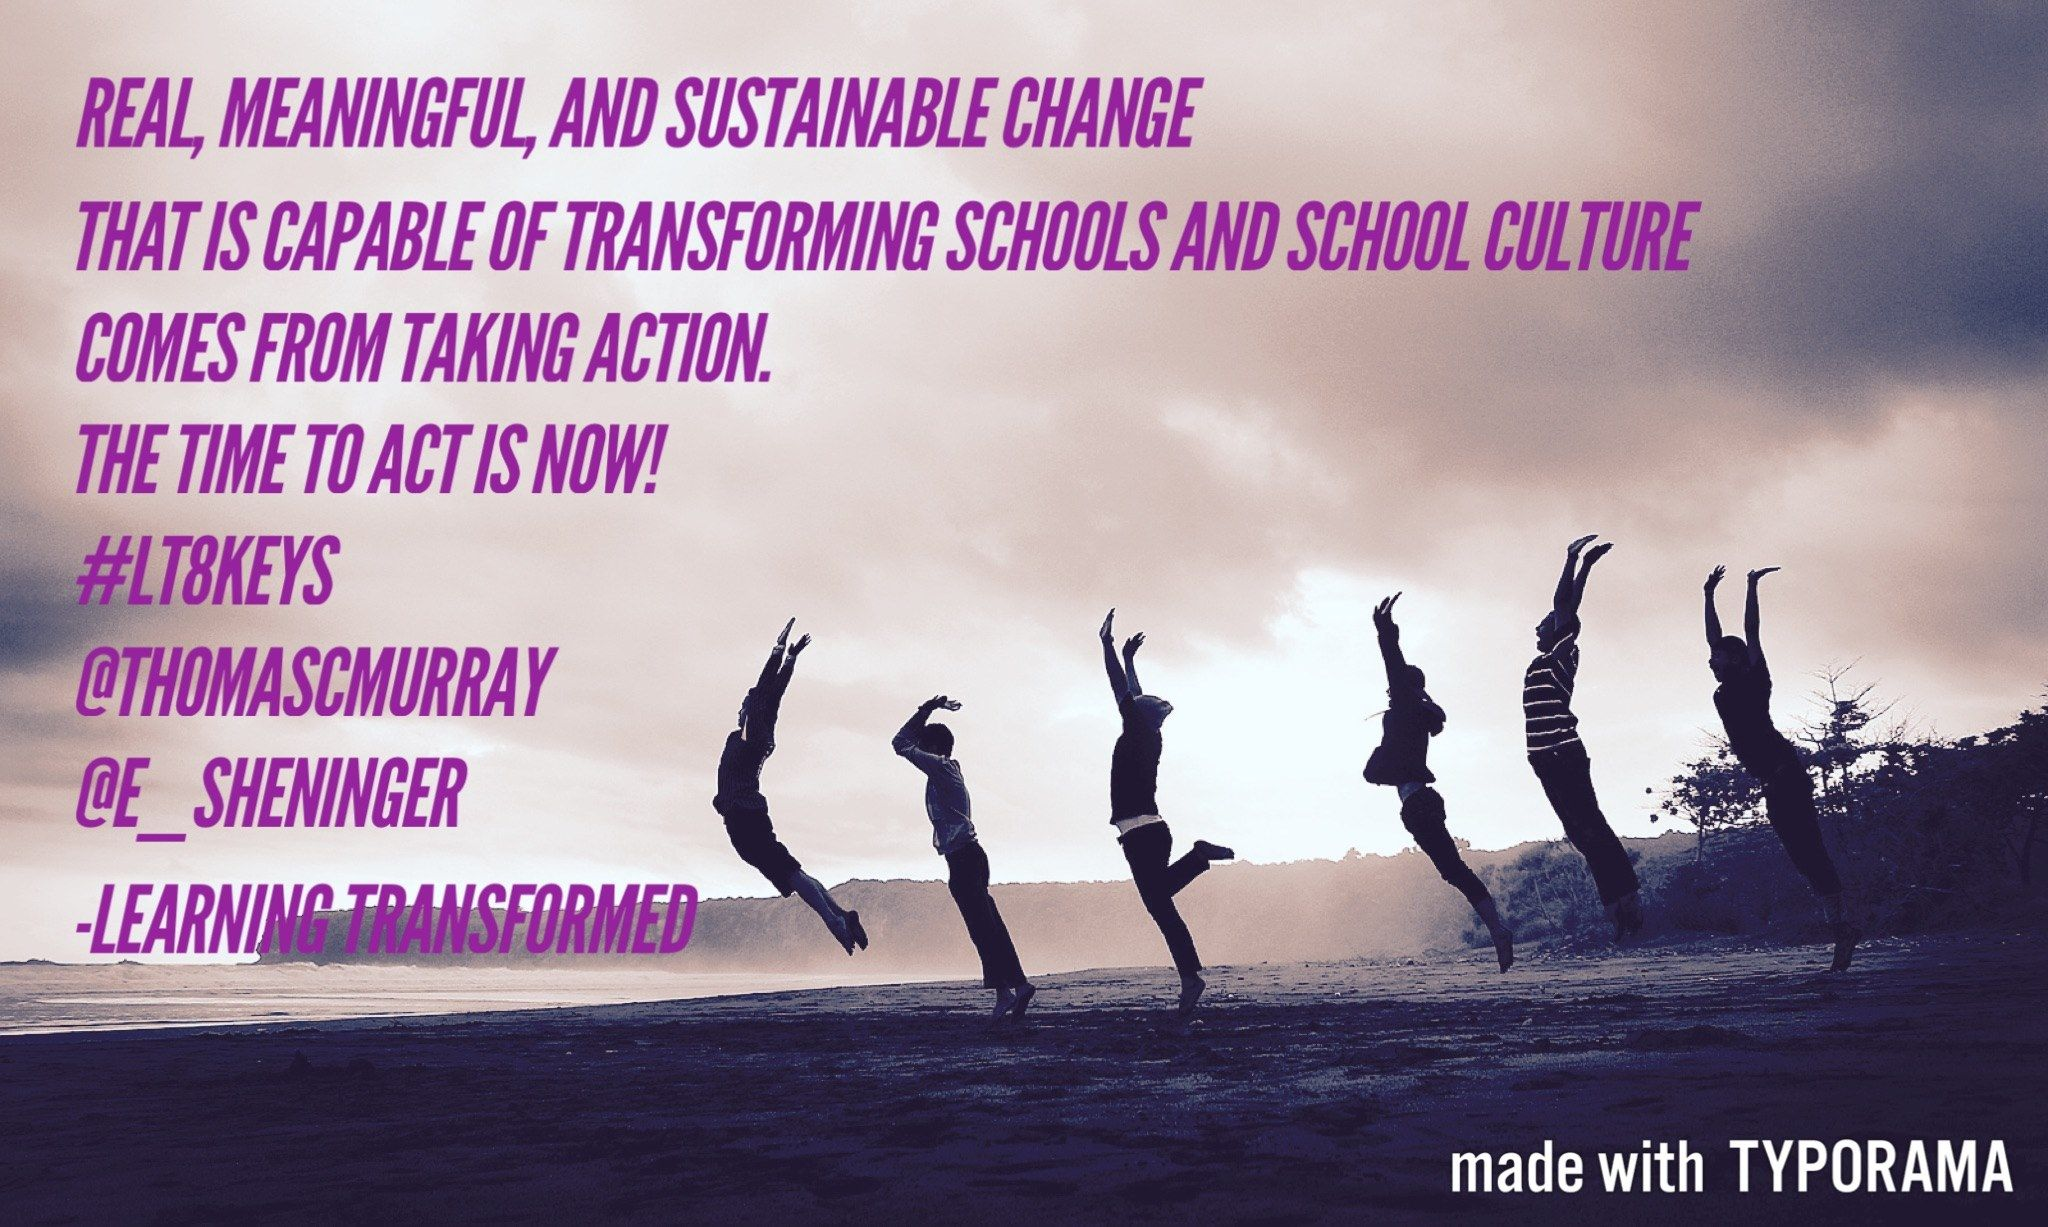 Real Meaningful And Sustainable Change That Is Capable